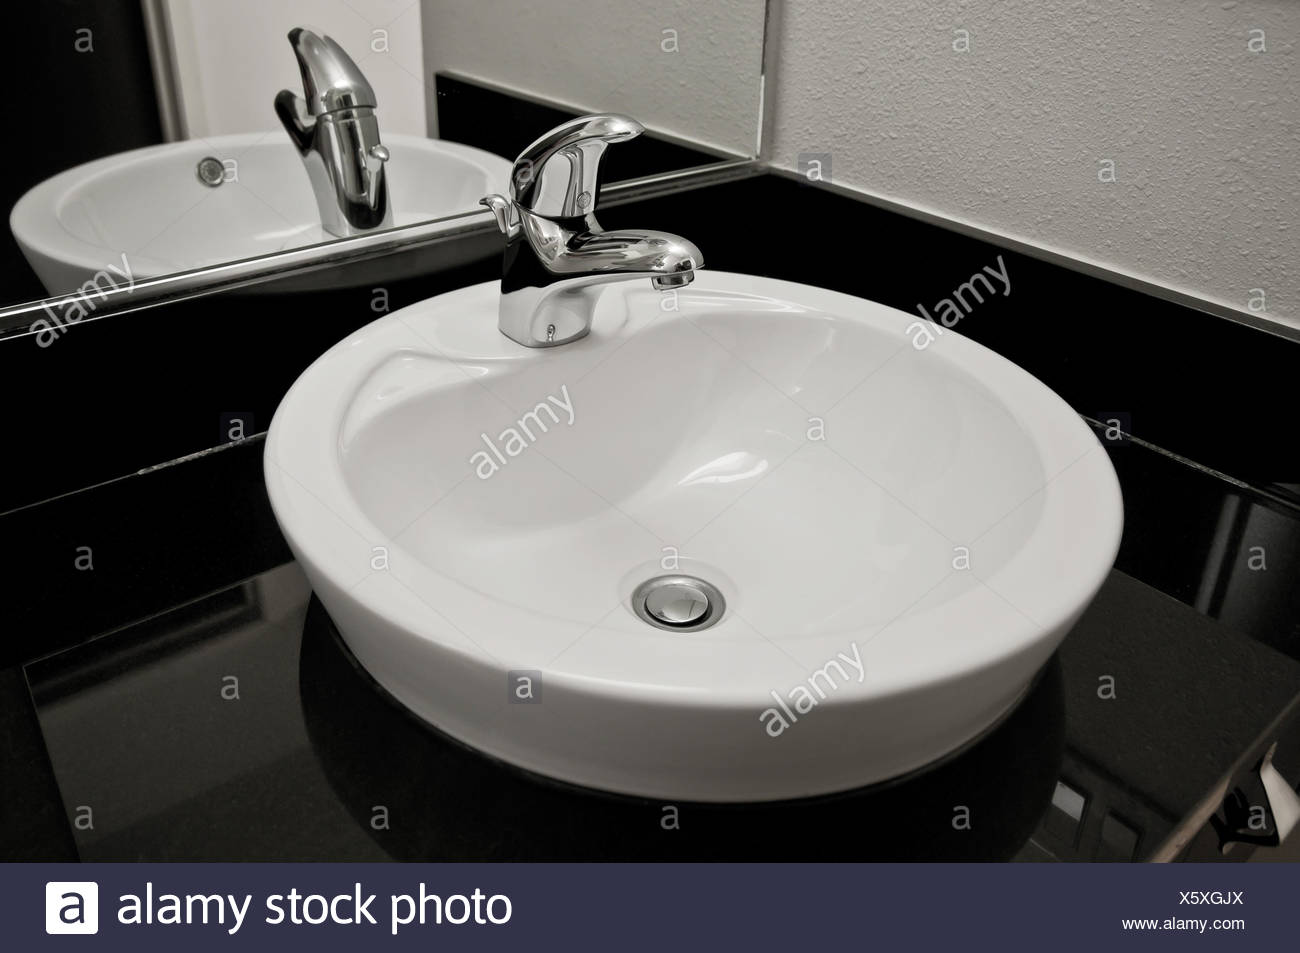 Sink - Stock Image